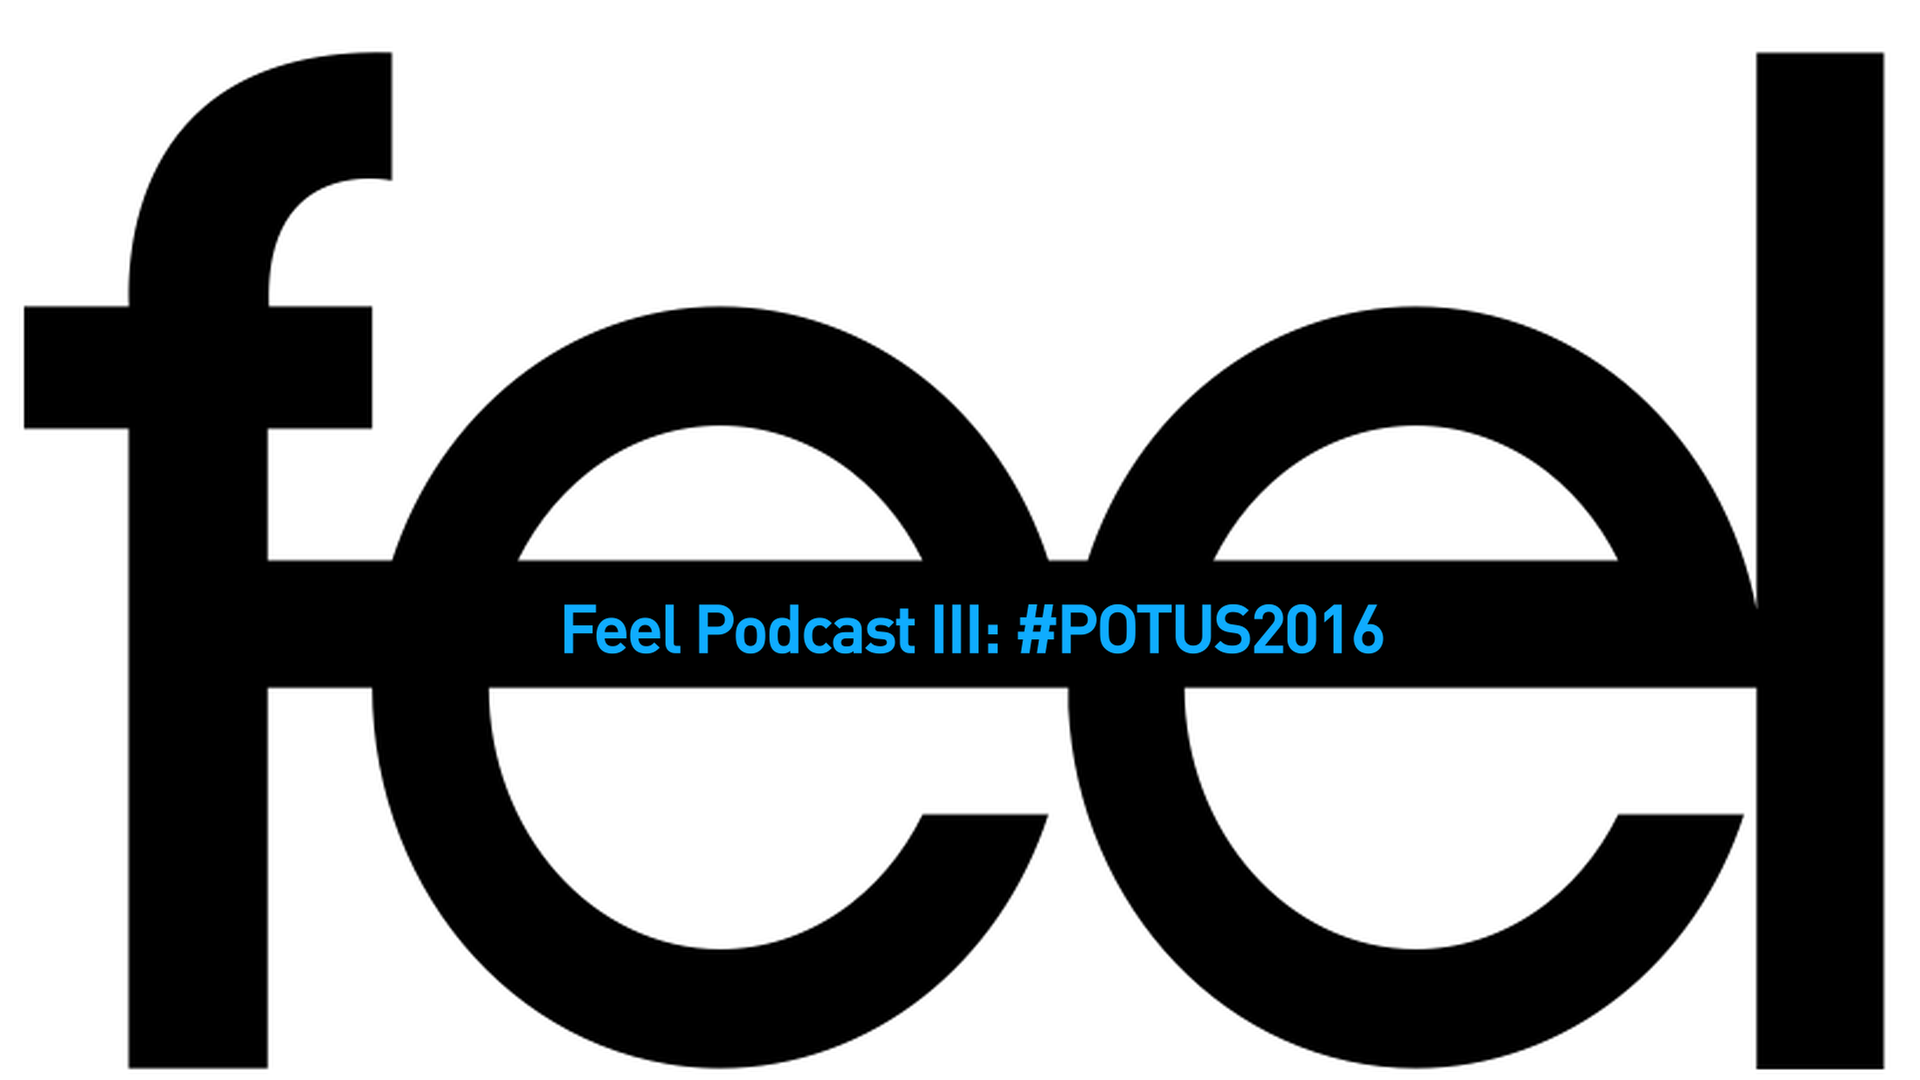 #FeelPodcast #POTUS2016